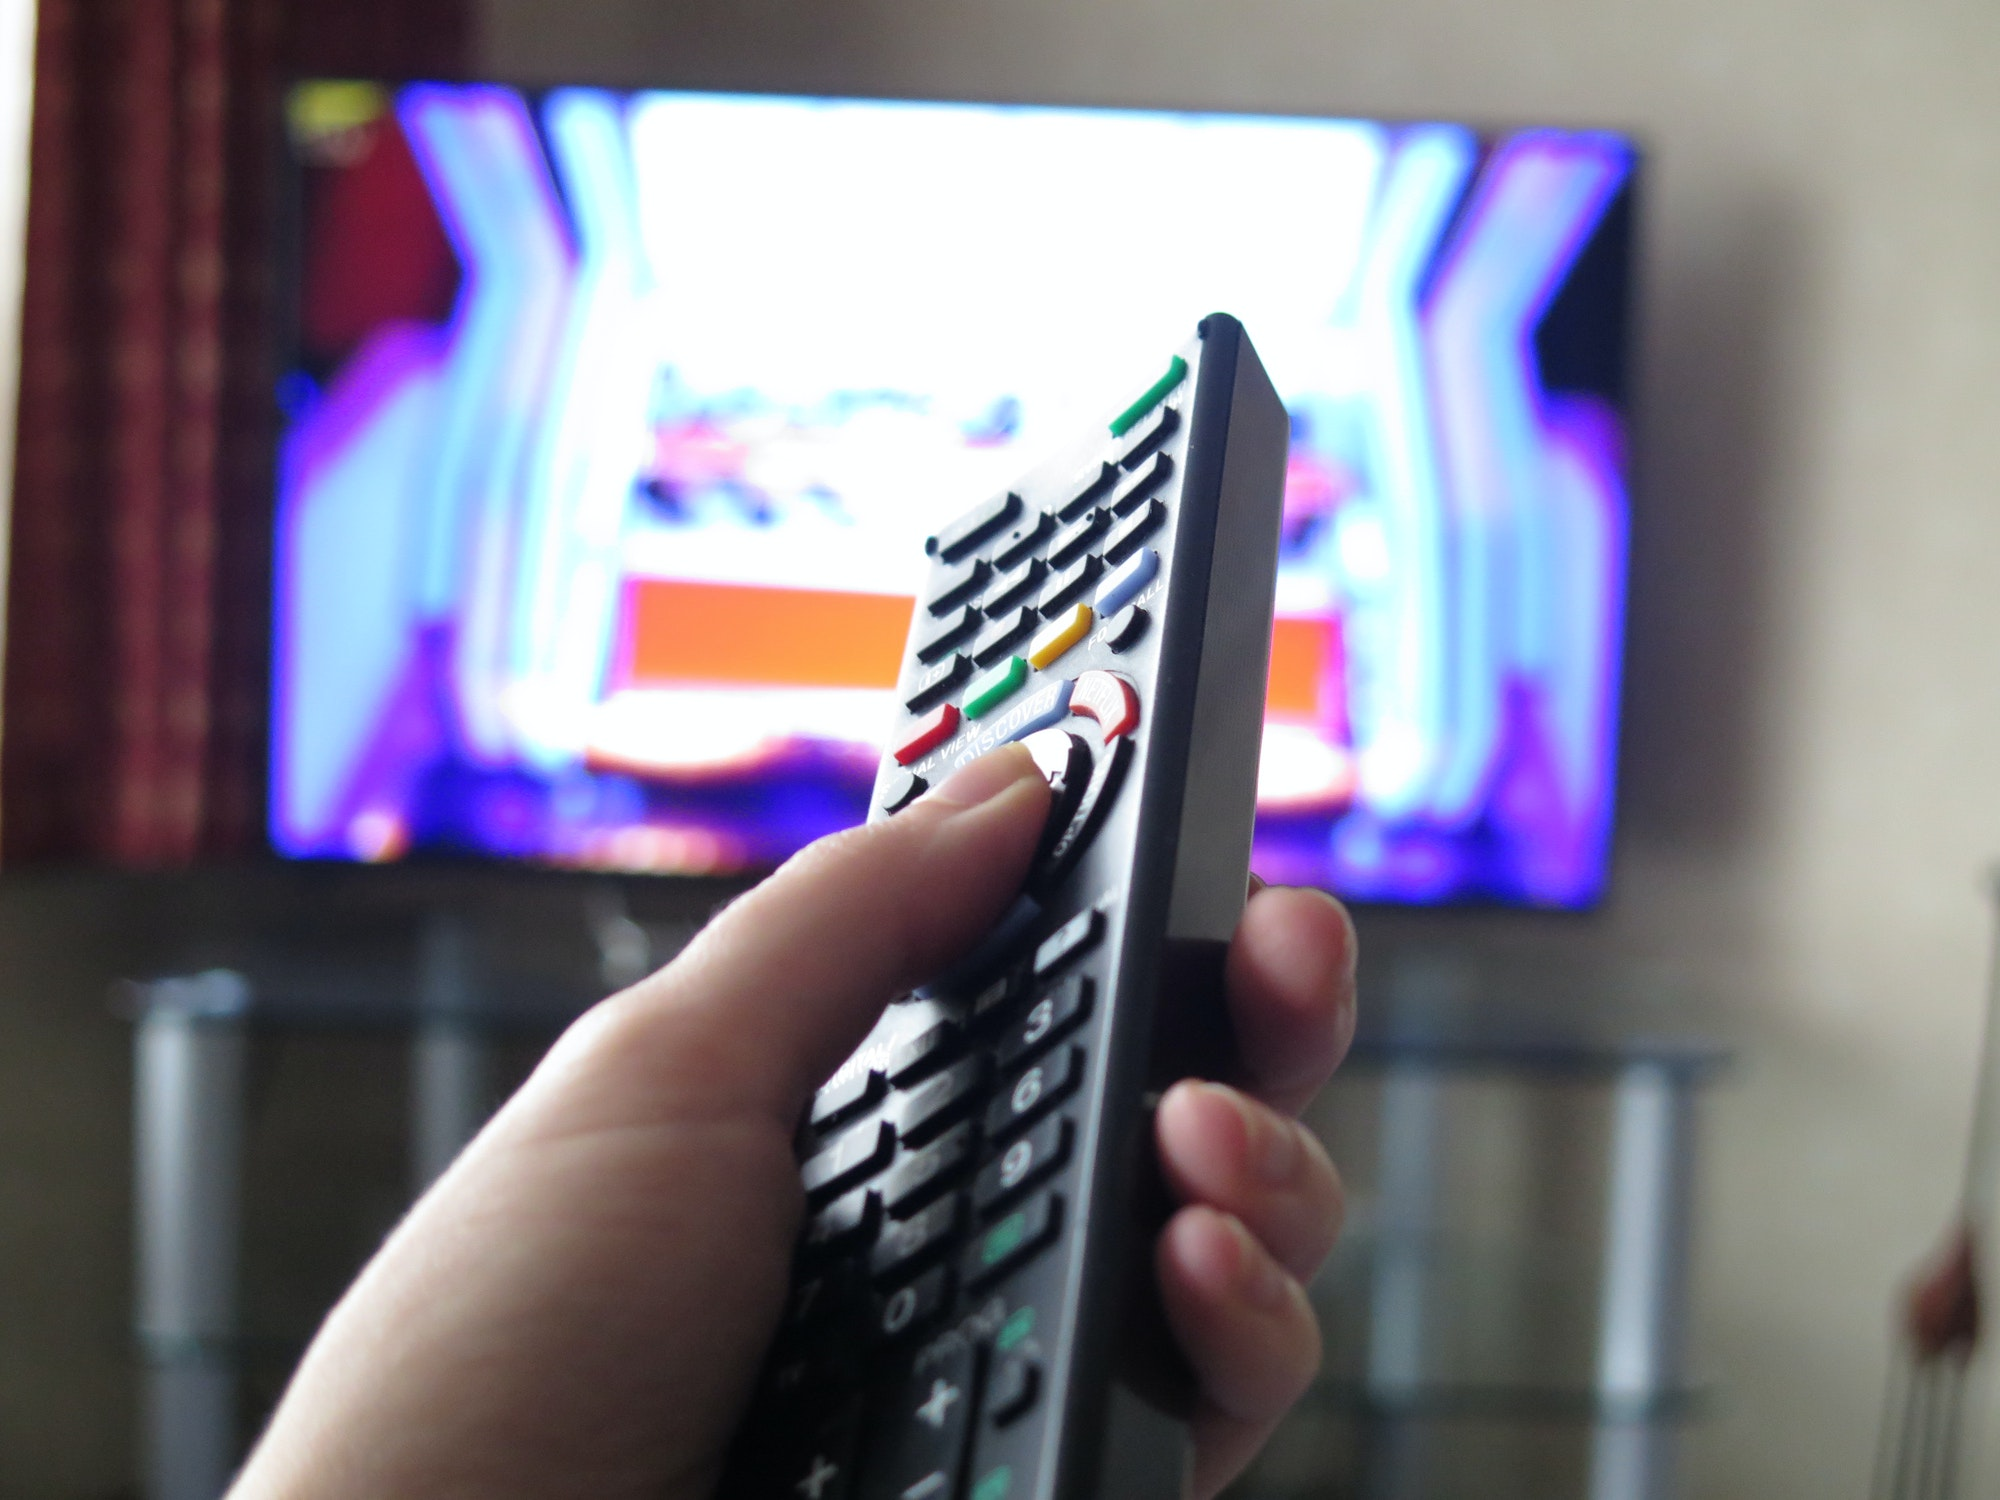 Remote control, watching television tv at home